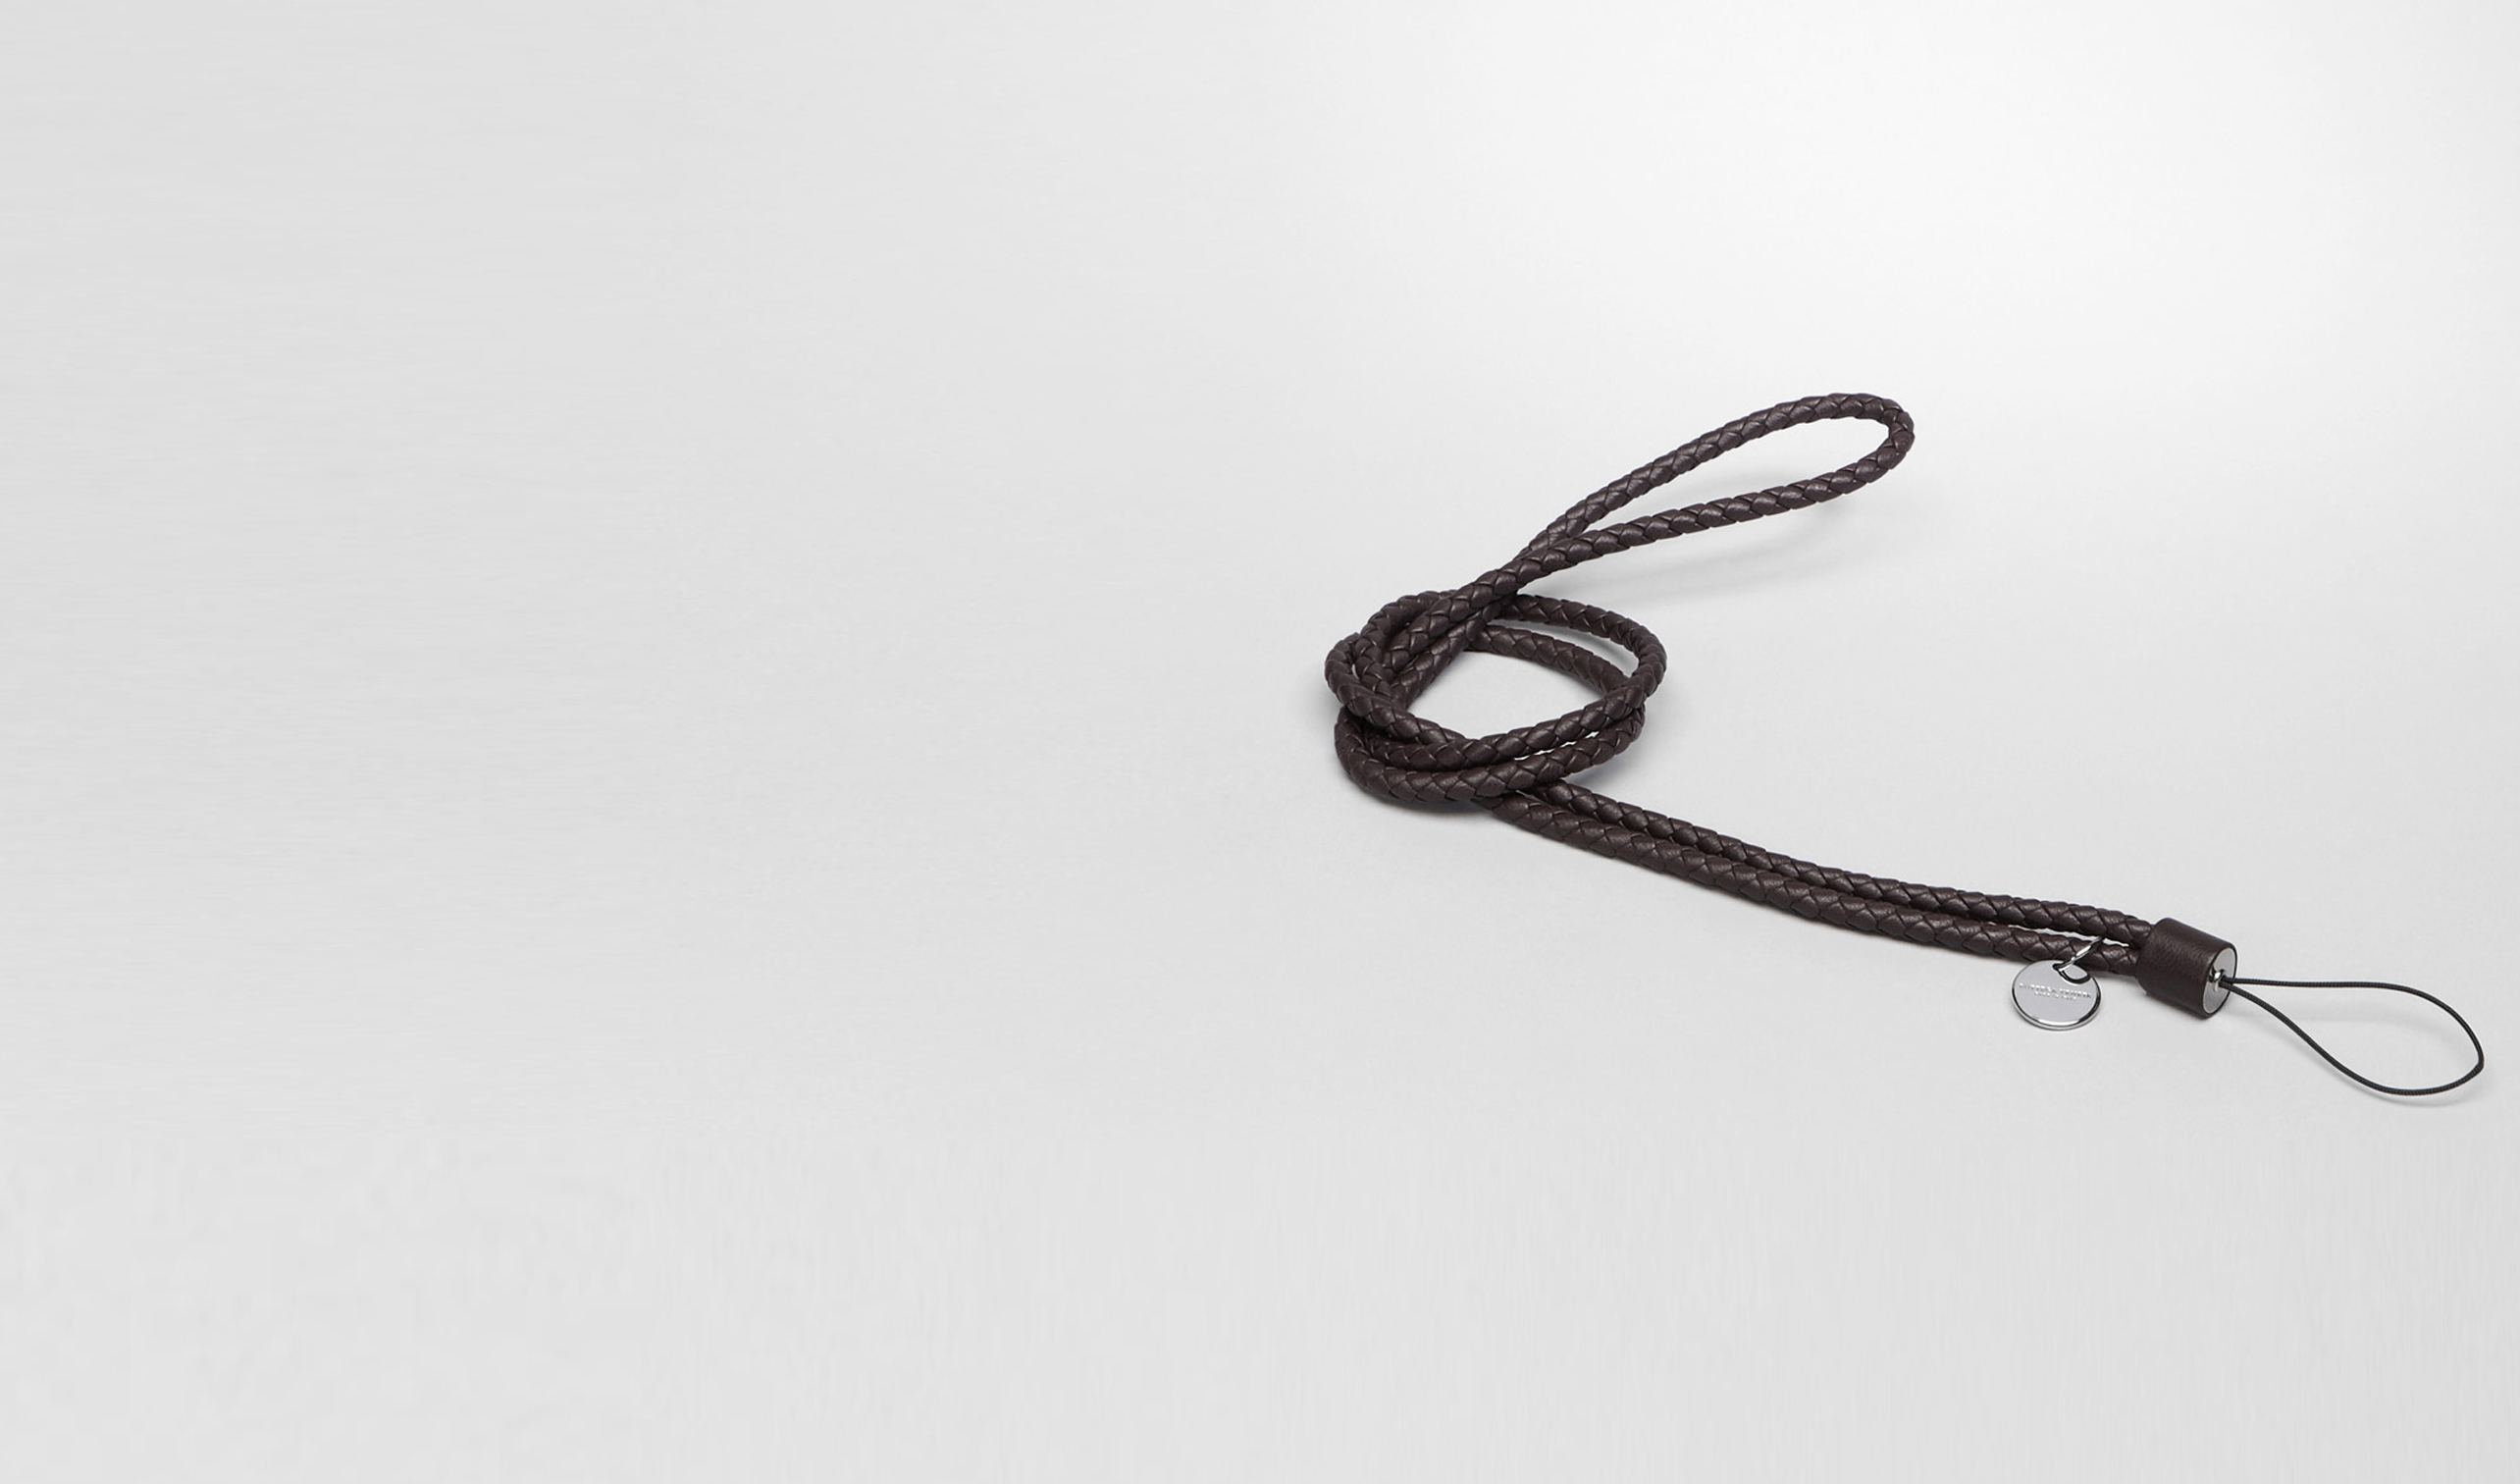 BOTTEGA VENETA Other Leather Accessory E Ebano Intrecciato Nappa Cell Phone Strap pl